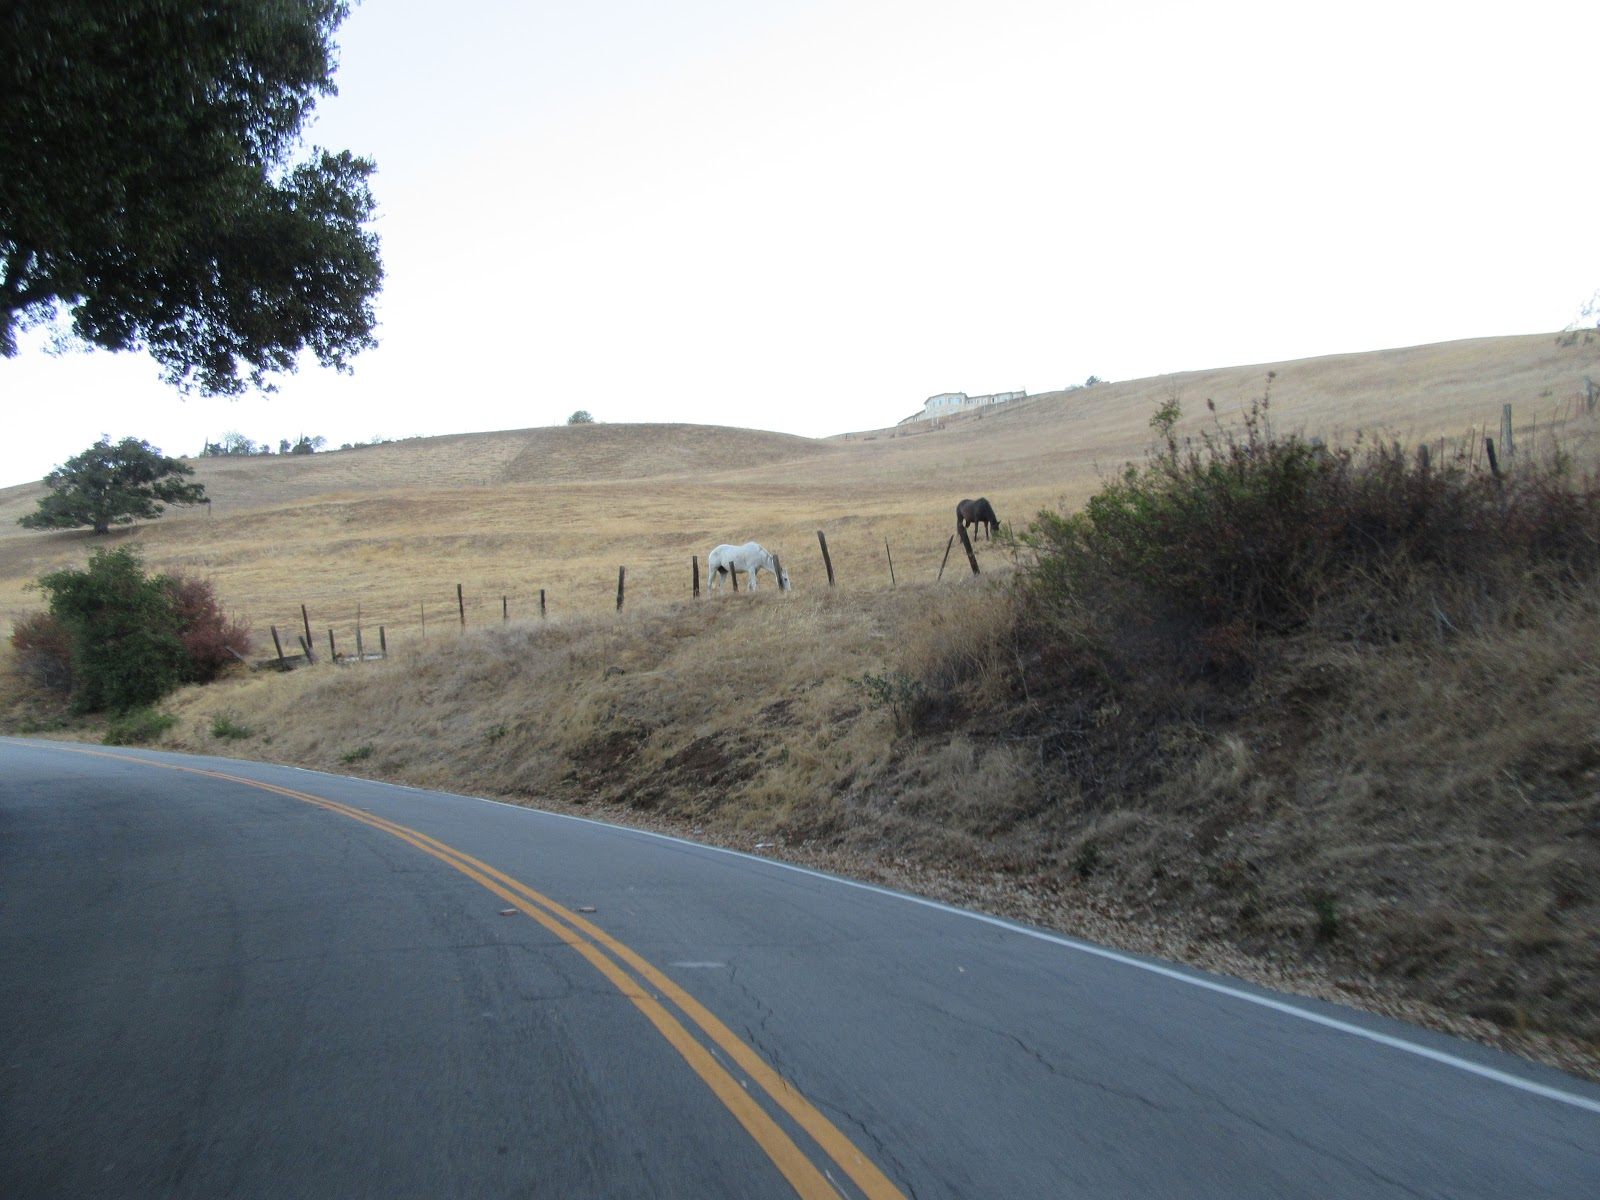 Bicycle climb of Quimby Road - horses and roadway, fields